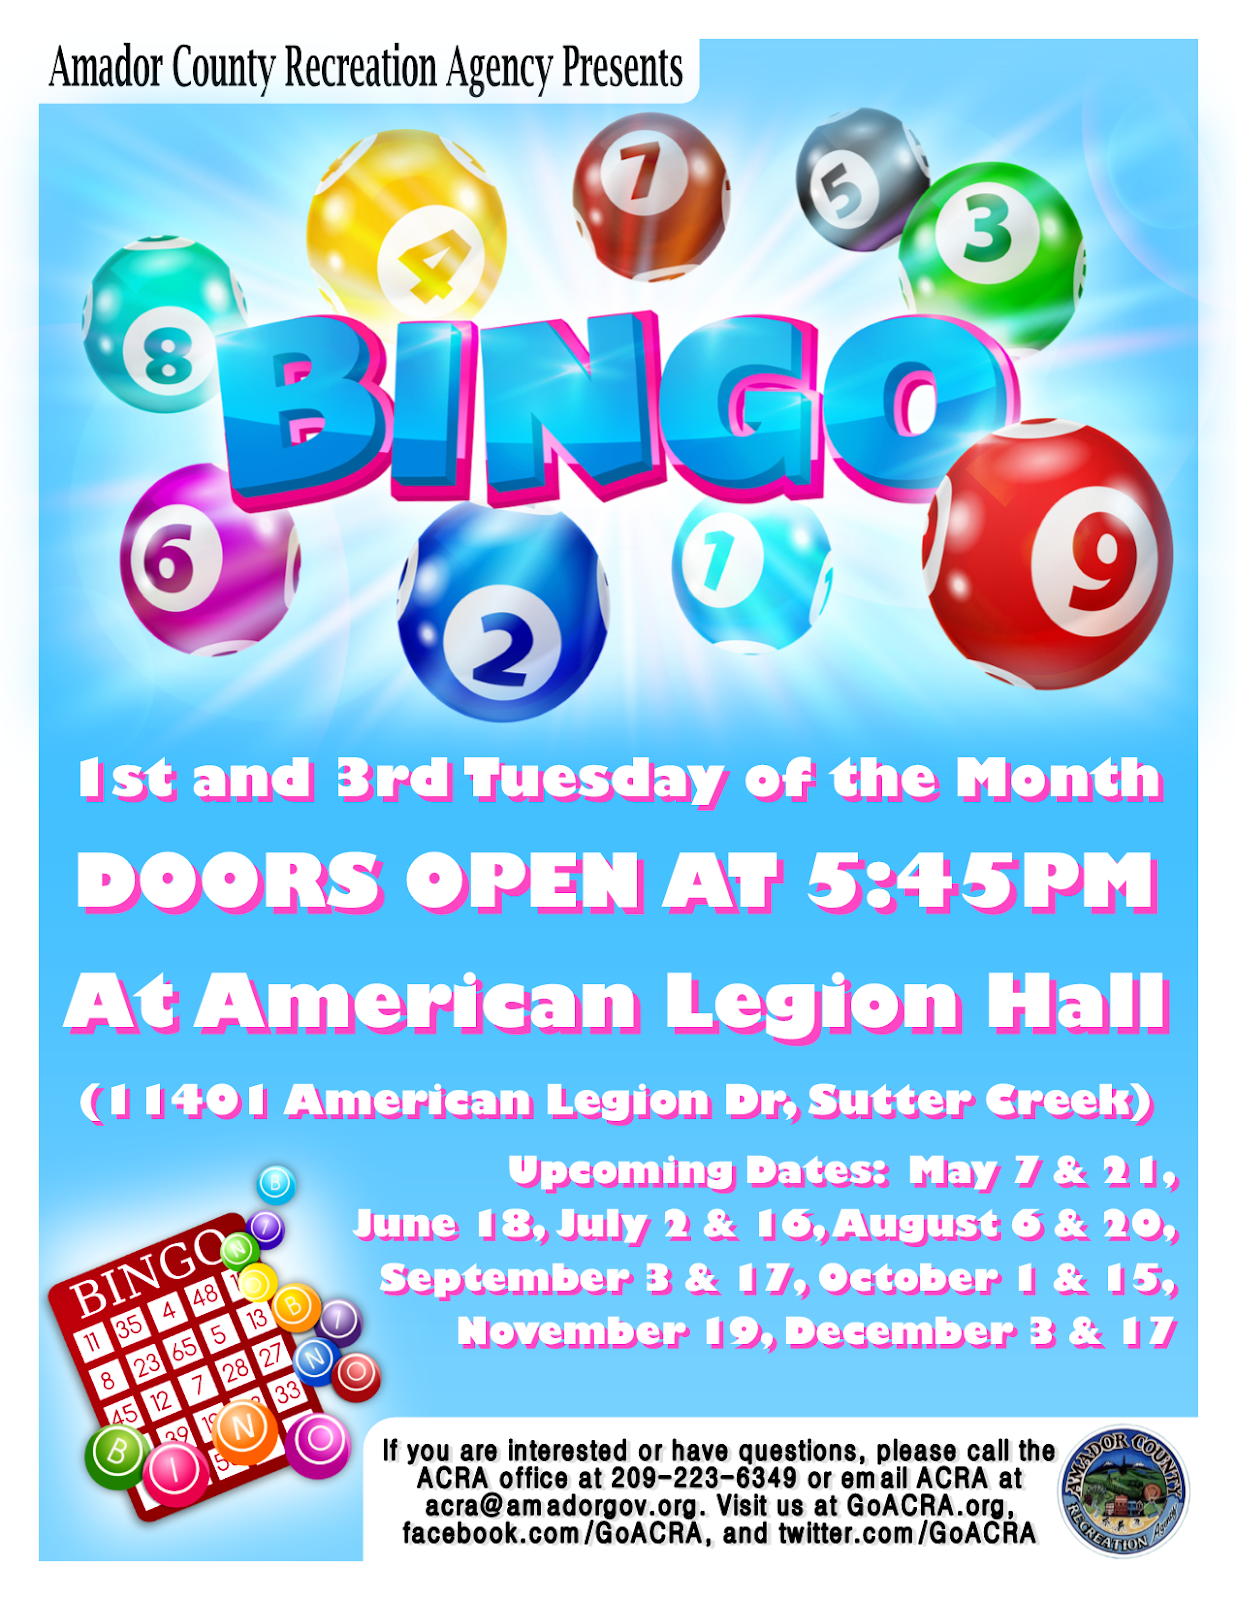 ACRA Bingo - Tues Aug 20